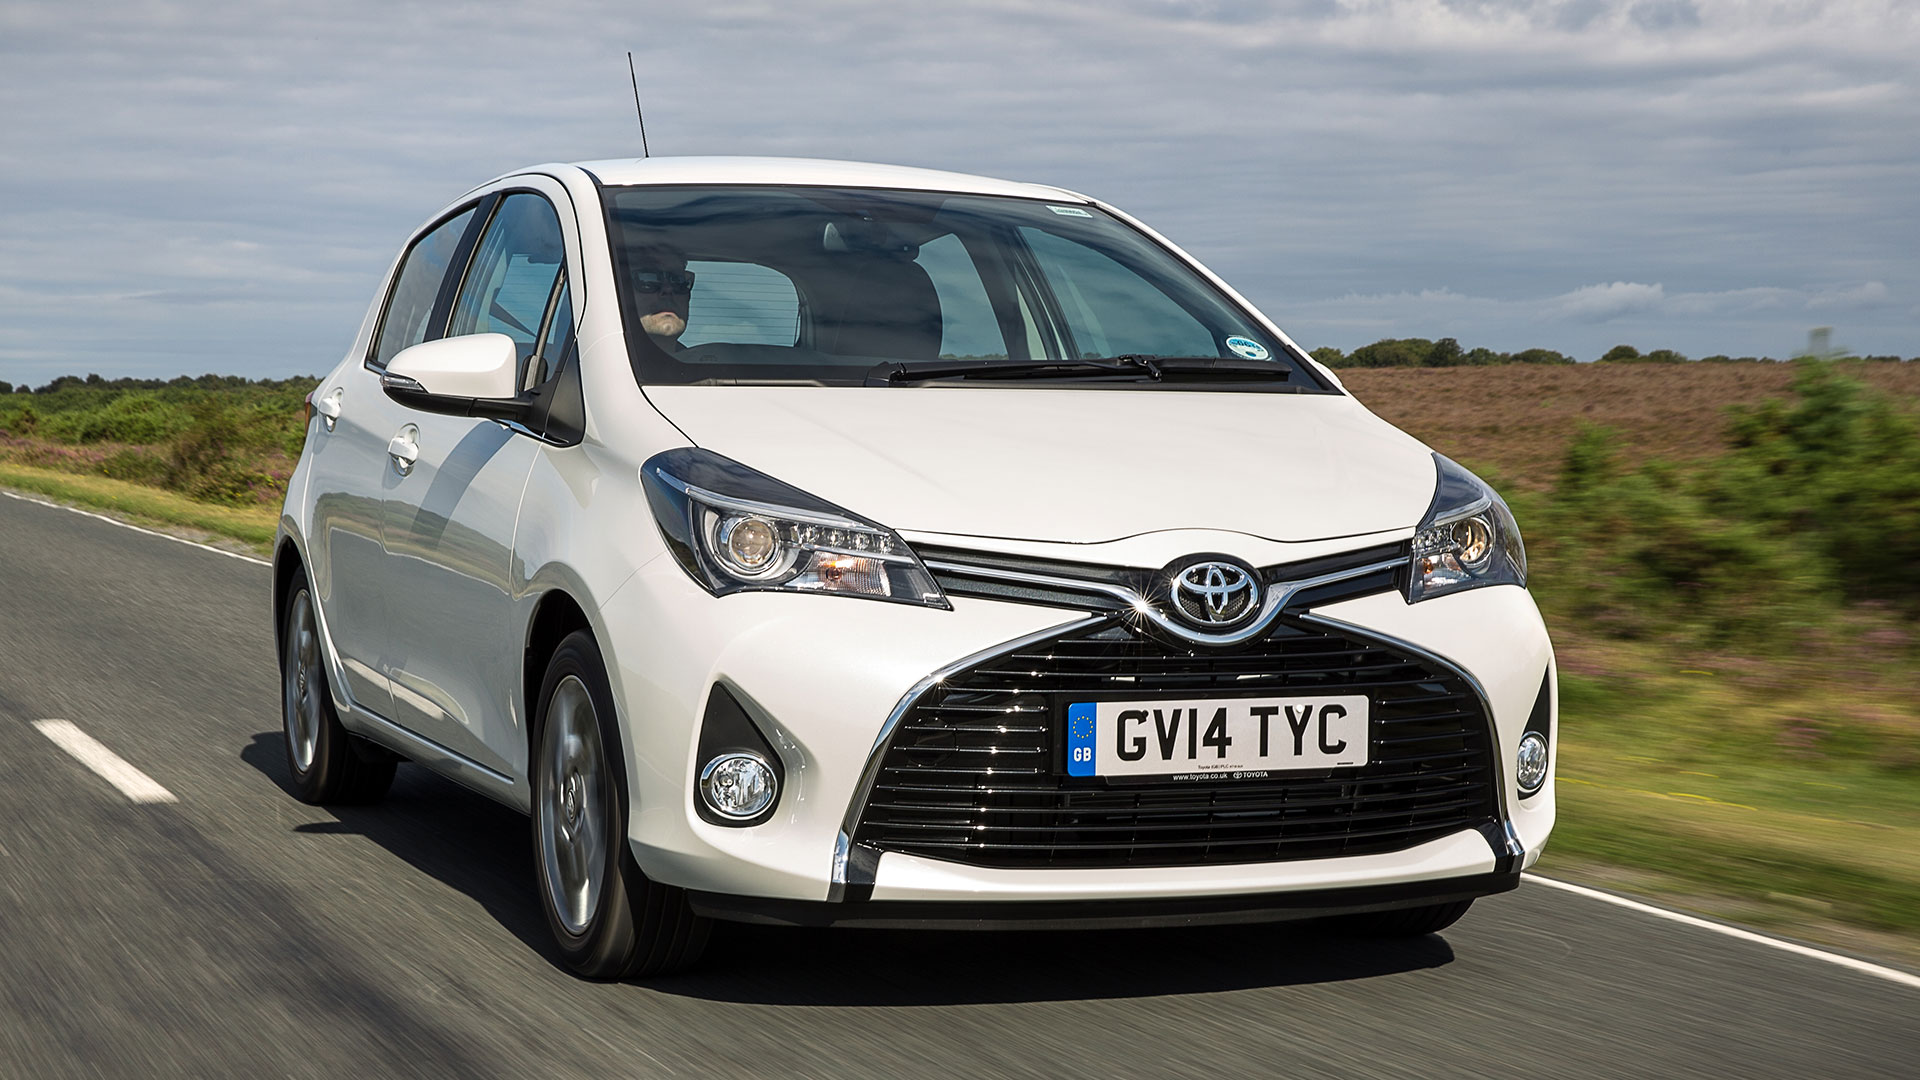 used toyota yaris cars for sale on auto trader uk. Black Bedroom Furniture Sets. Home Design Ideas